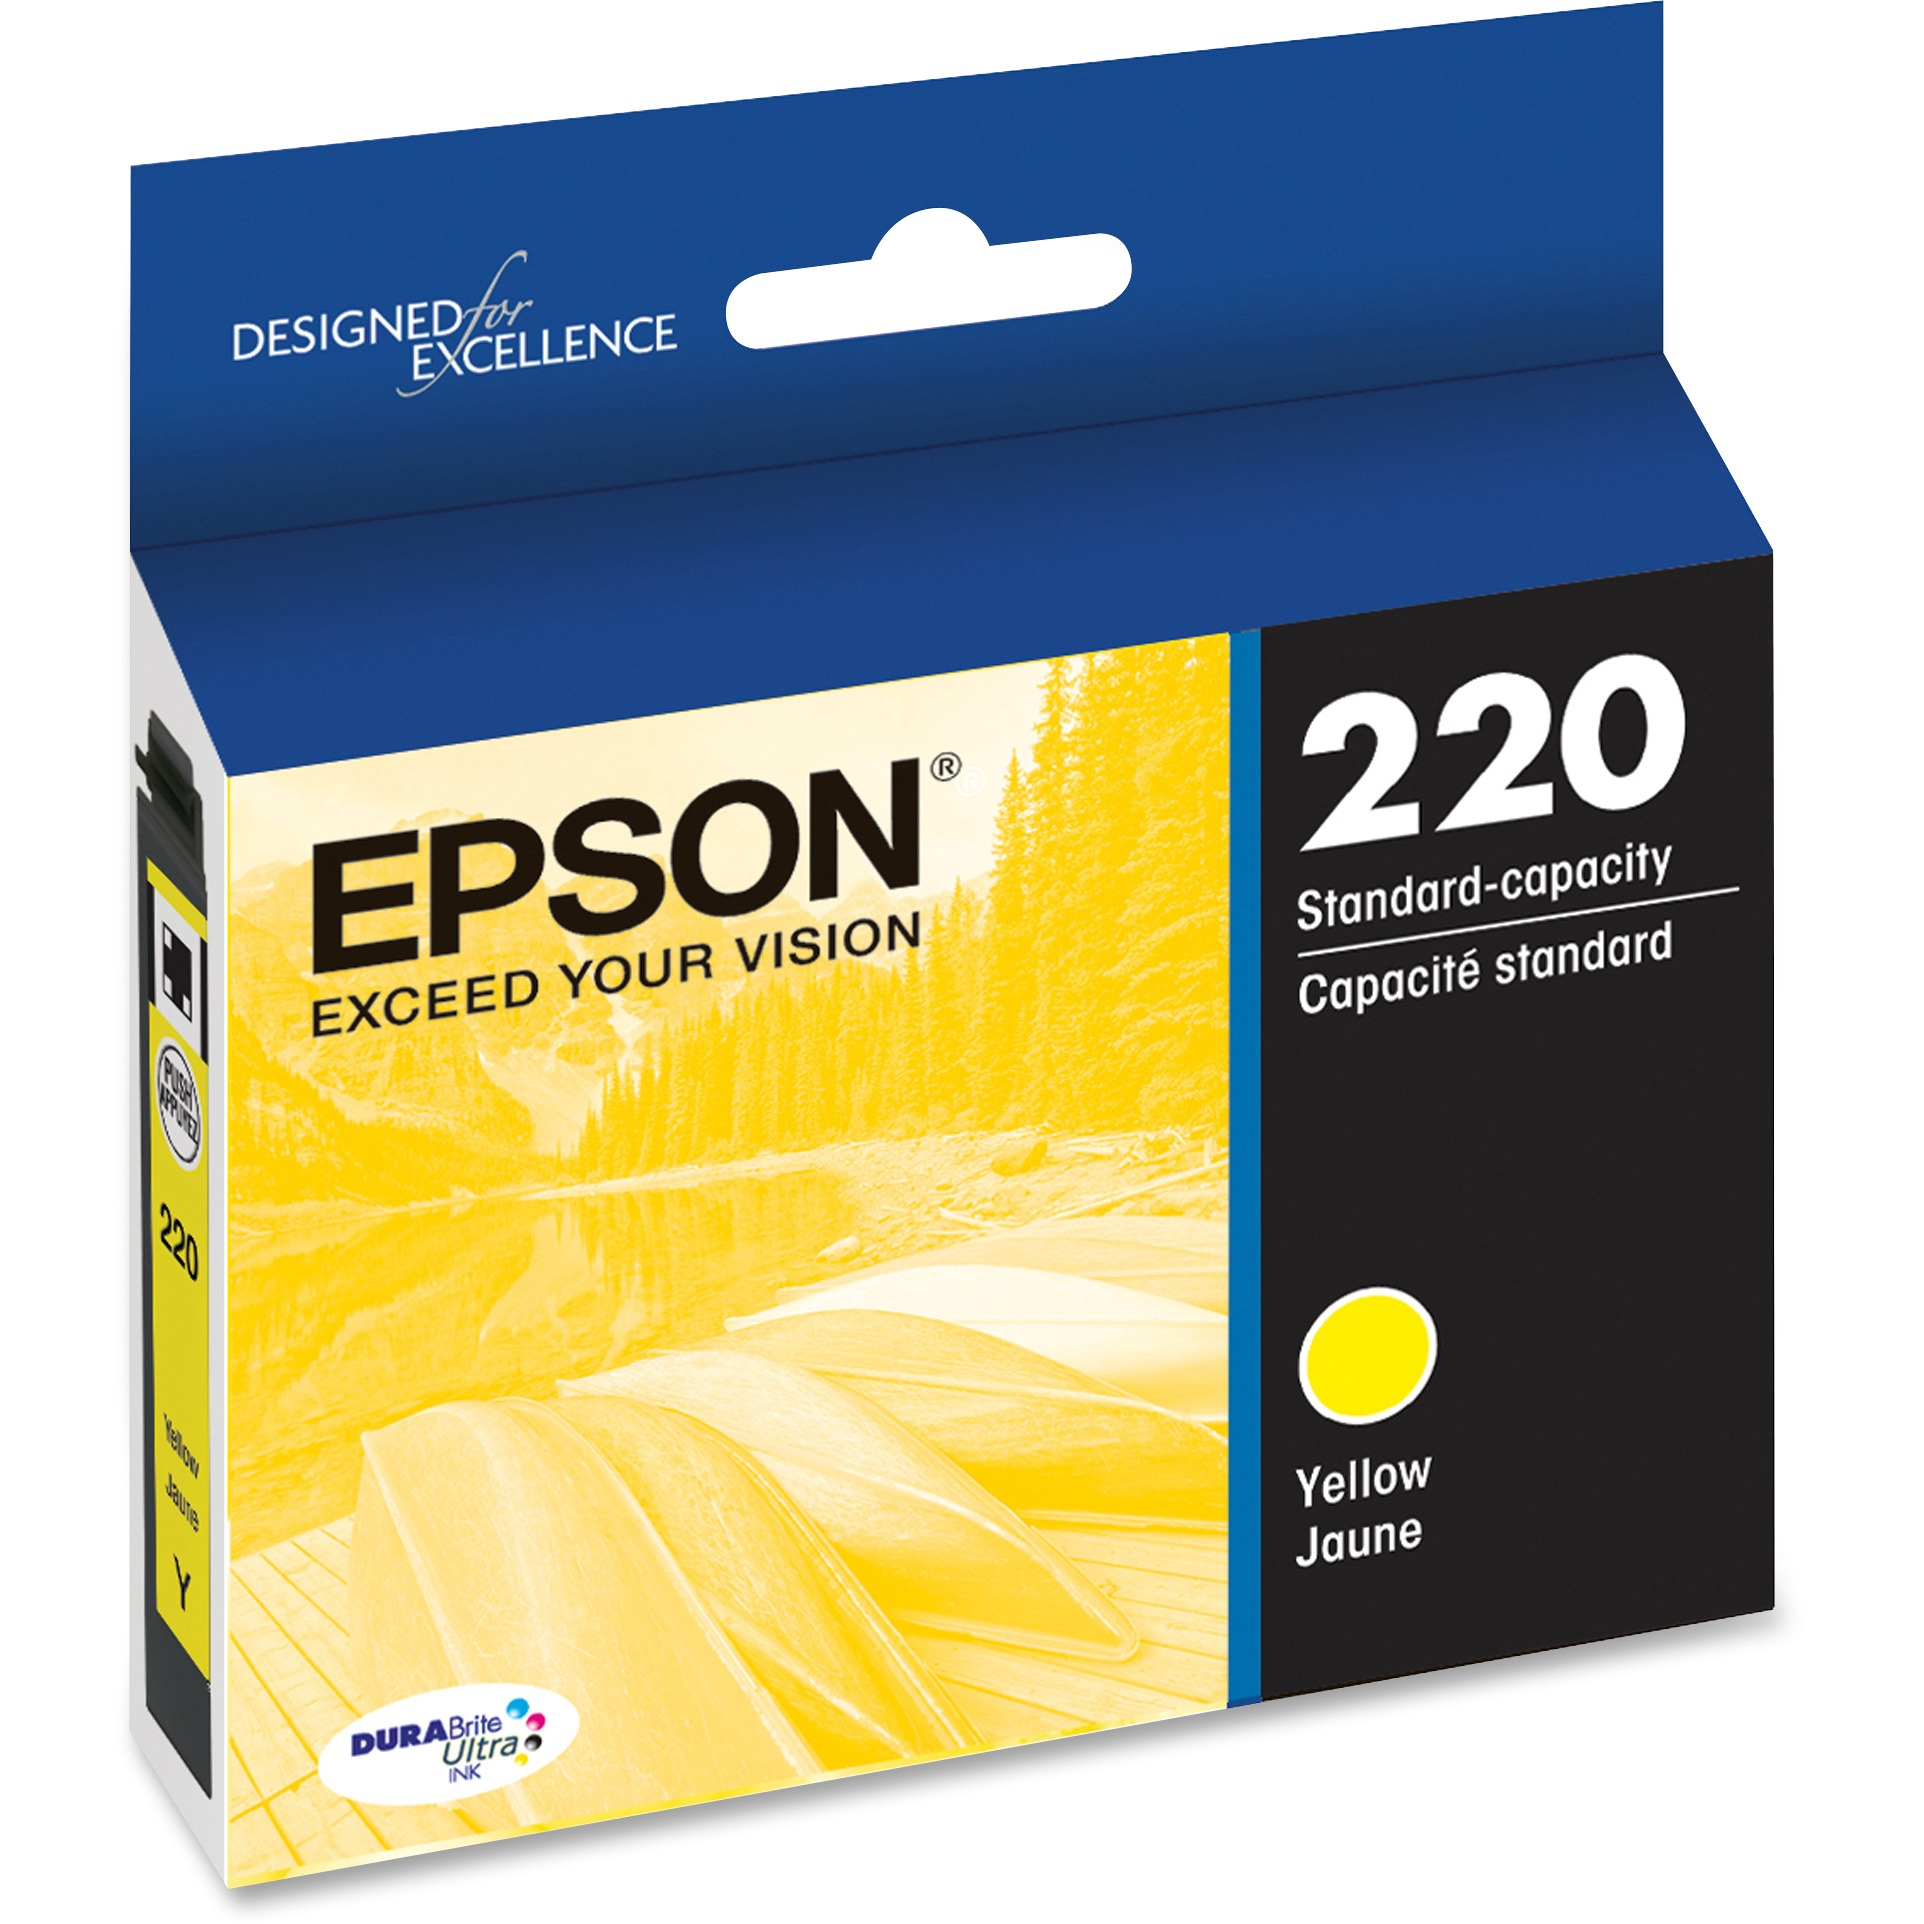 Epson 220 DURABrite Ultra Ink Original Ink Cartridge